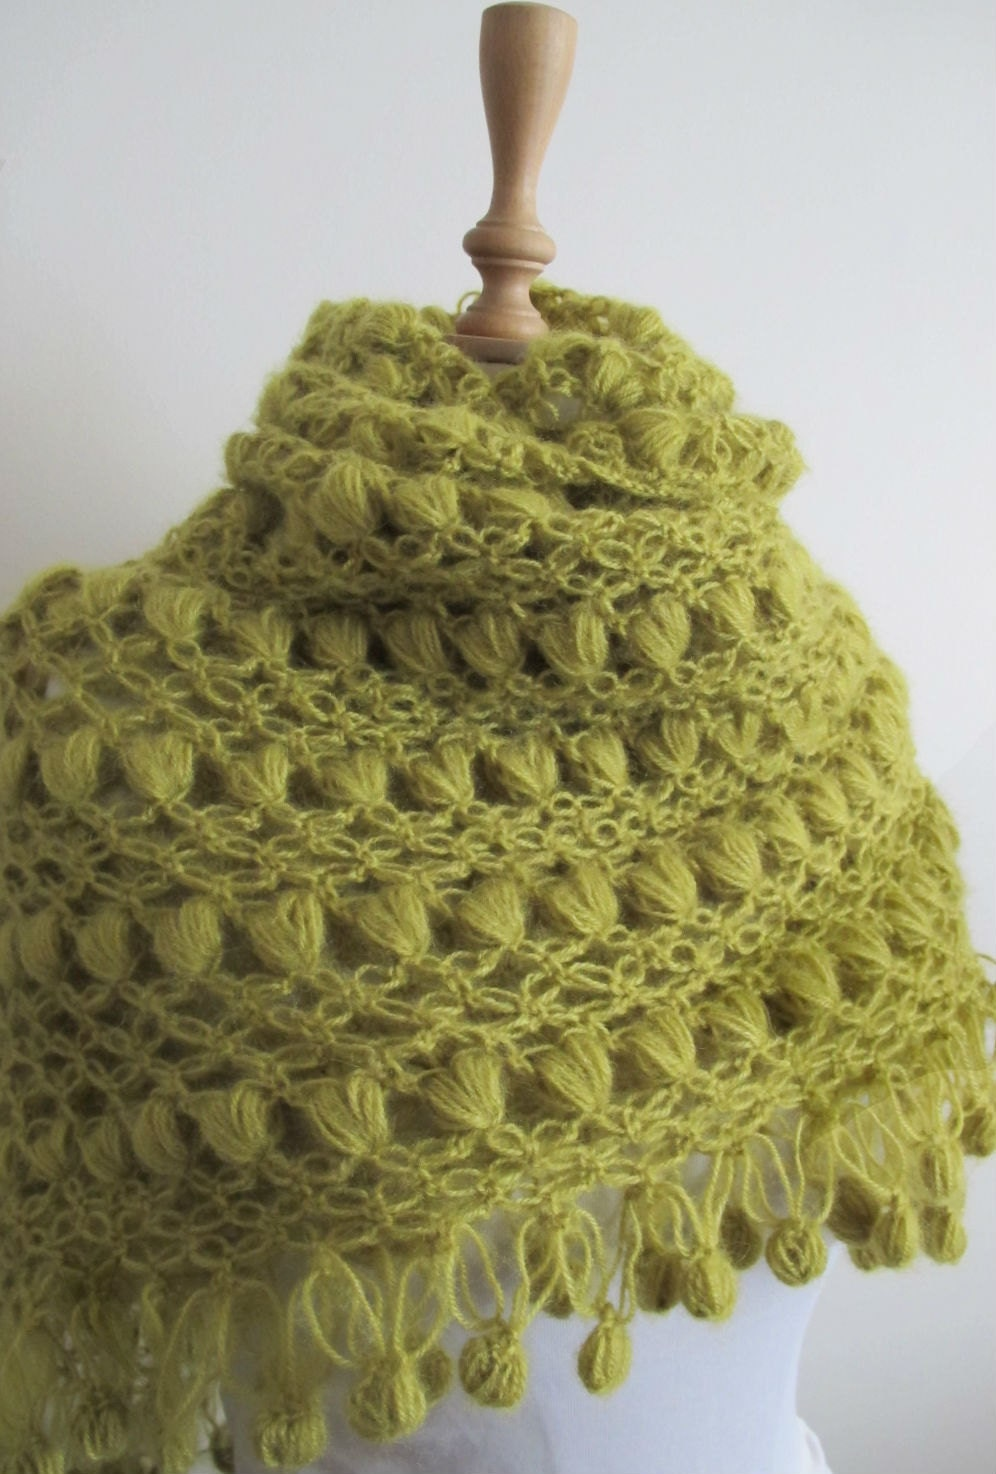 Knitting And Crochet Patterns : Free Knit & Crochet Scarf & Hat free online knitting patterns Crochet...